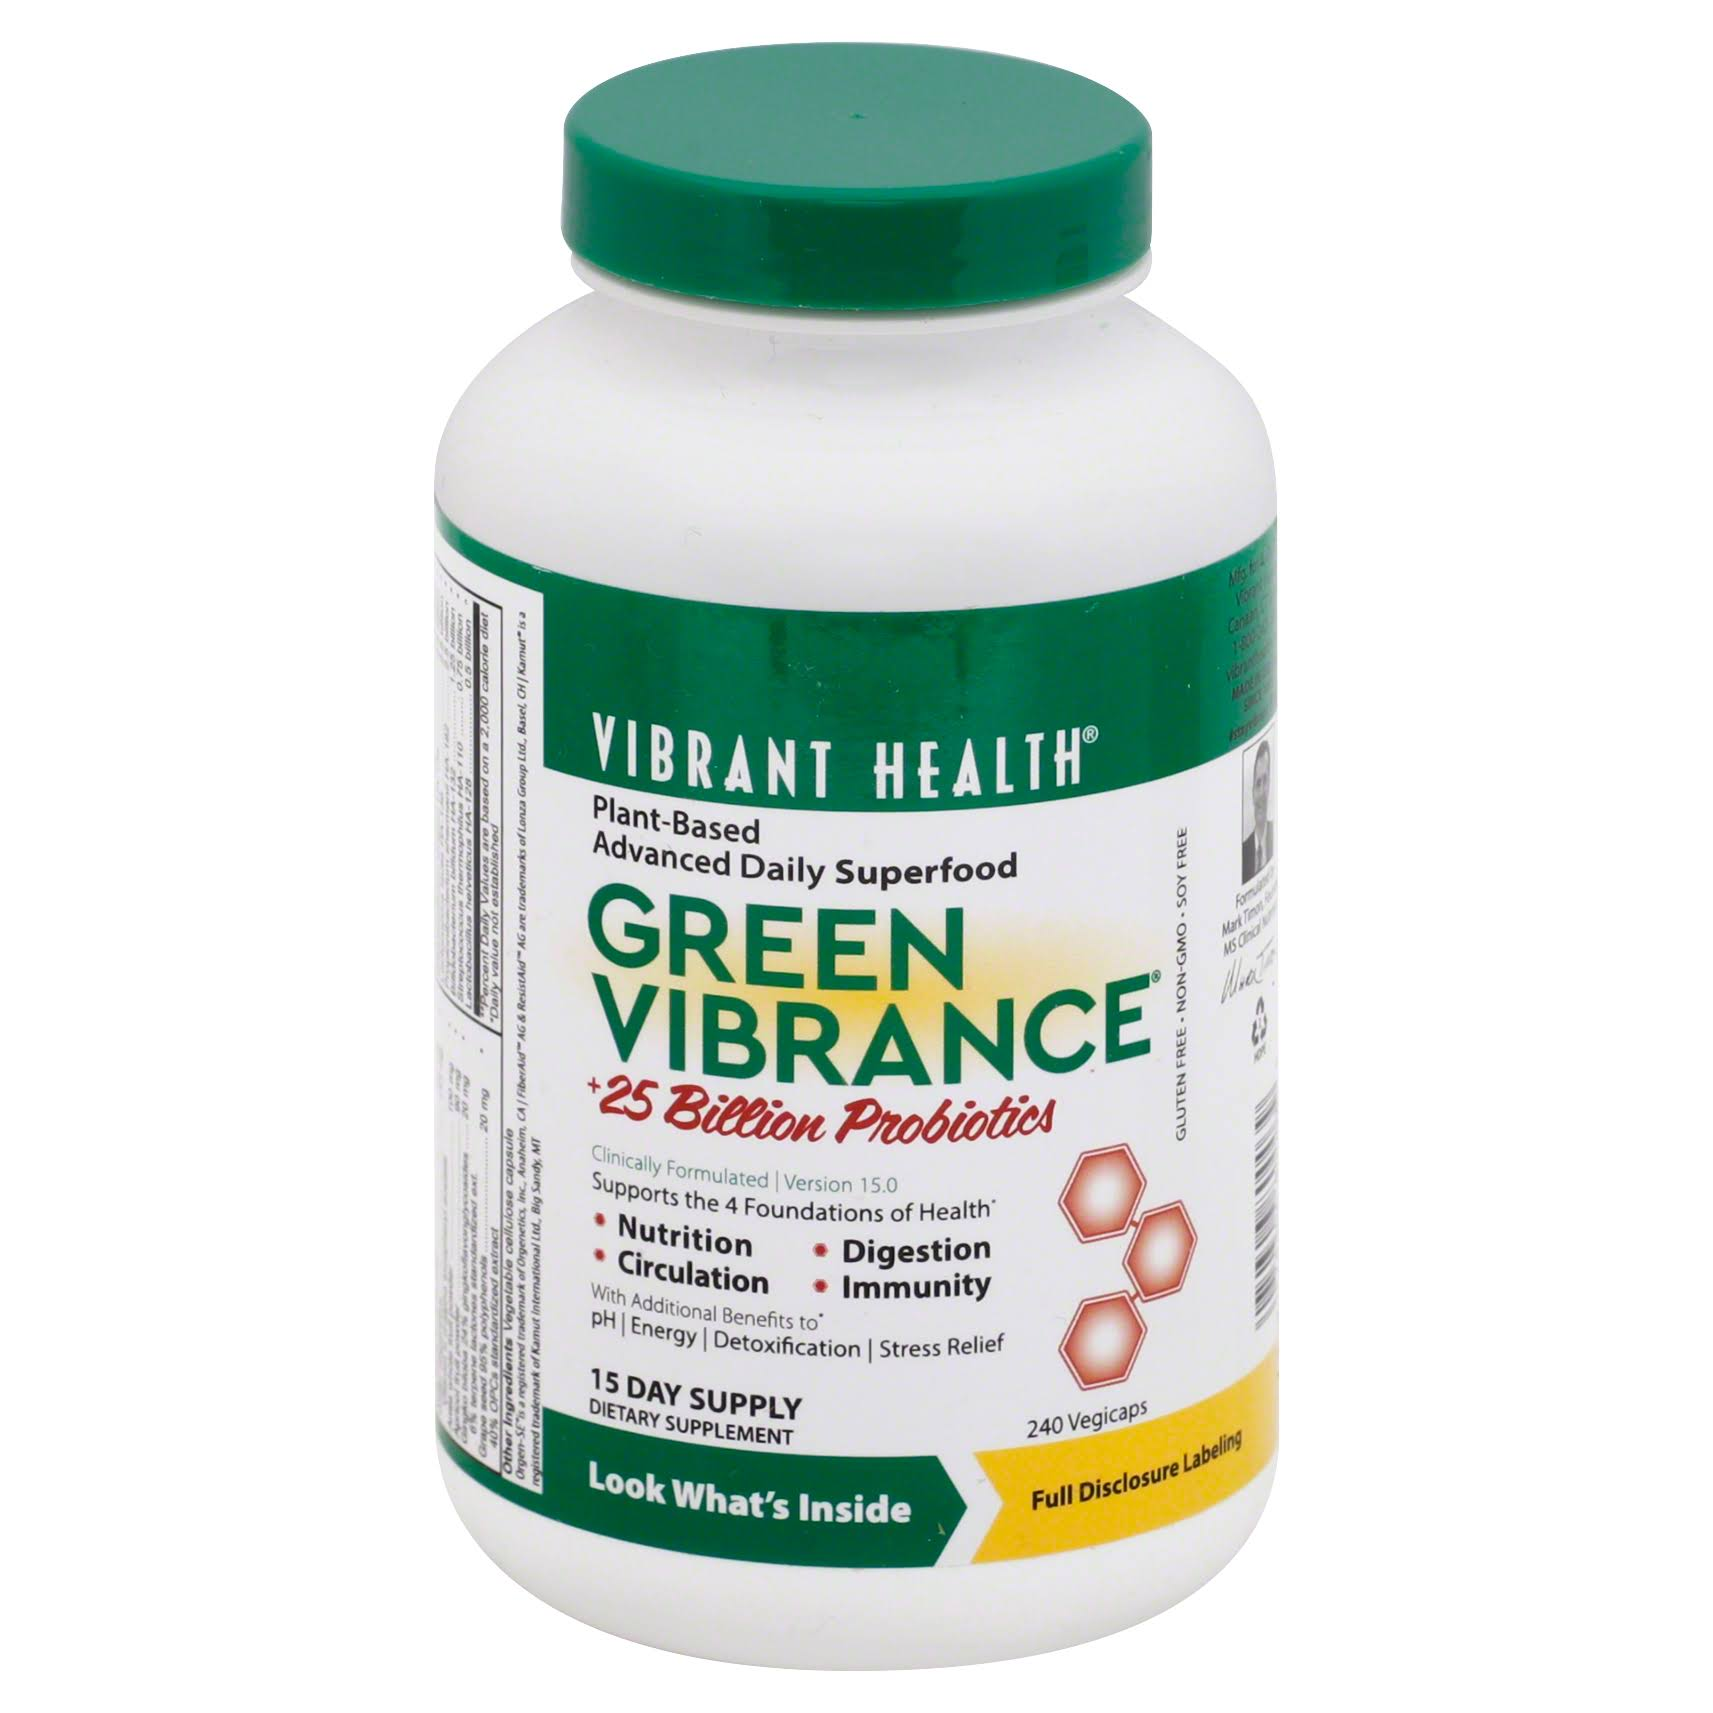 Vibrant Health Green Vibrance Dietary Supplement - 240 Capsules